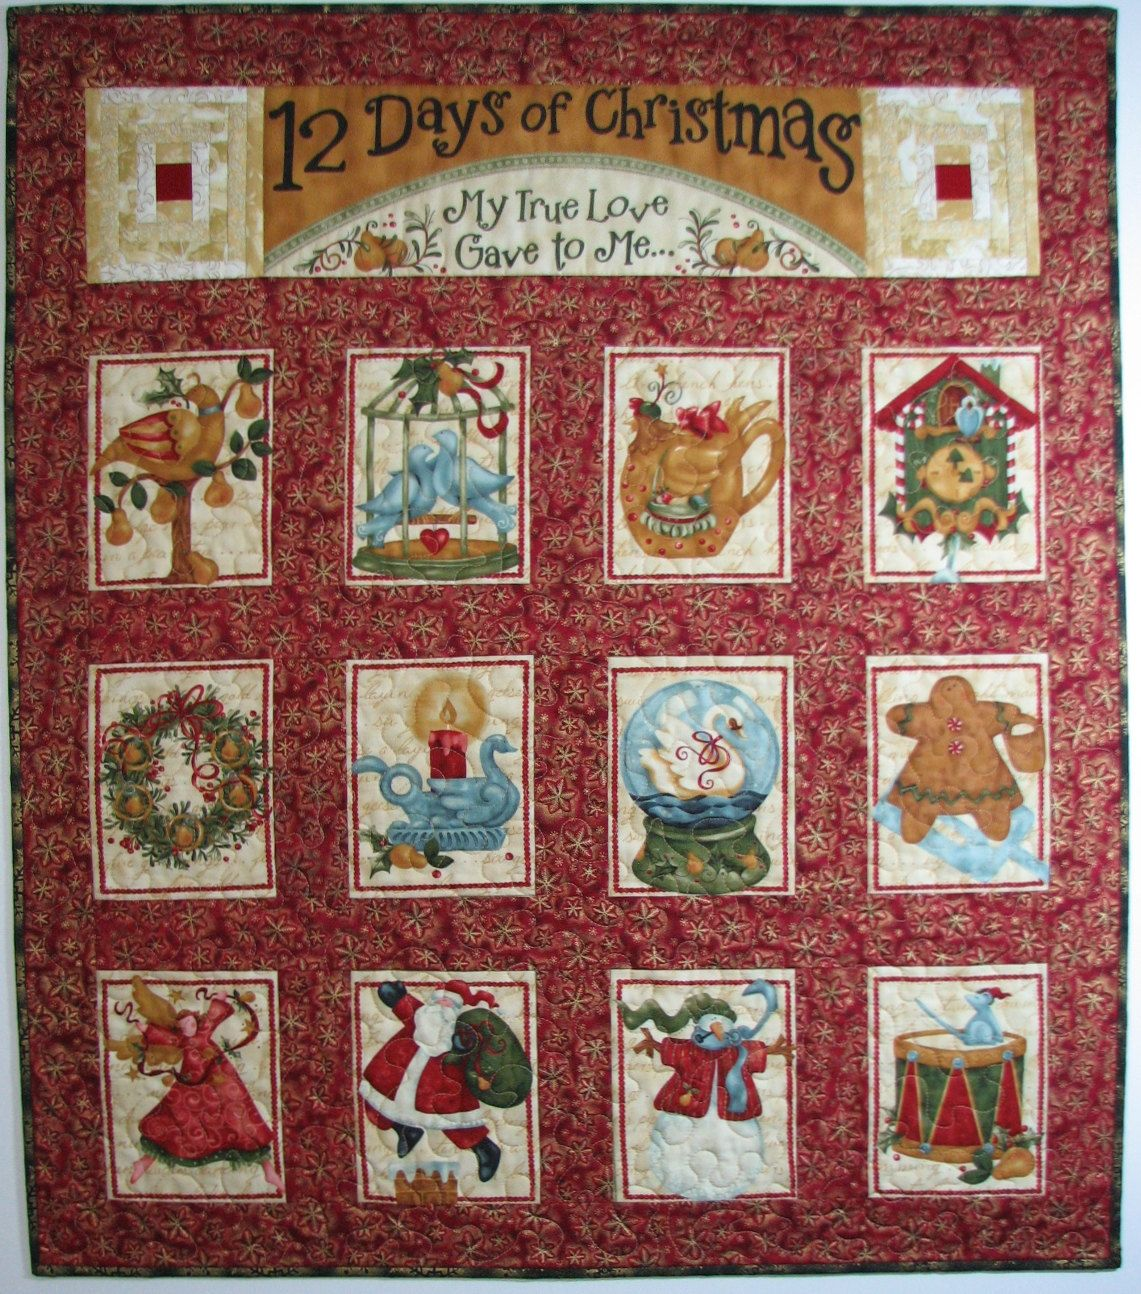 Quilted Wall Hanging Christmas Wall Hanging 12 Day Of Christmas Folk Art Wall Hanging Quilted Wall Hangings Christmas Wall Hangings Hanging Wall Art